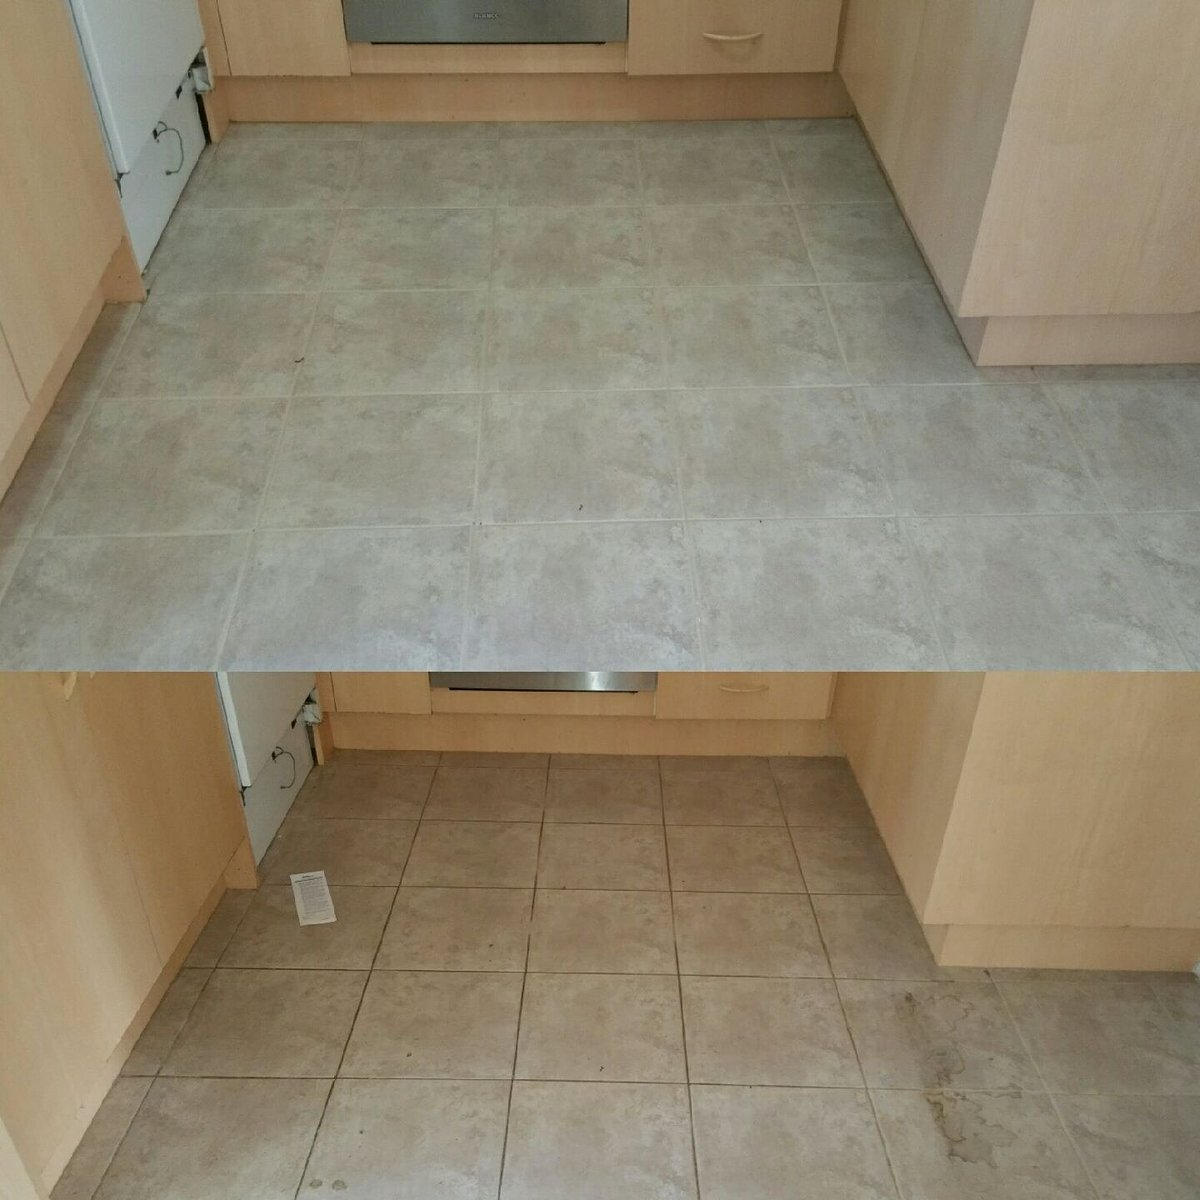 This was for a exit #tileandgrout  clean and came up #Perfect with @OHHCS1. #FlashbackFriday #professionalcleaning #followusontwitter <br>http://pic.twitter.com/aHjYShJI1k